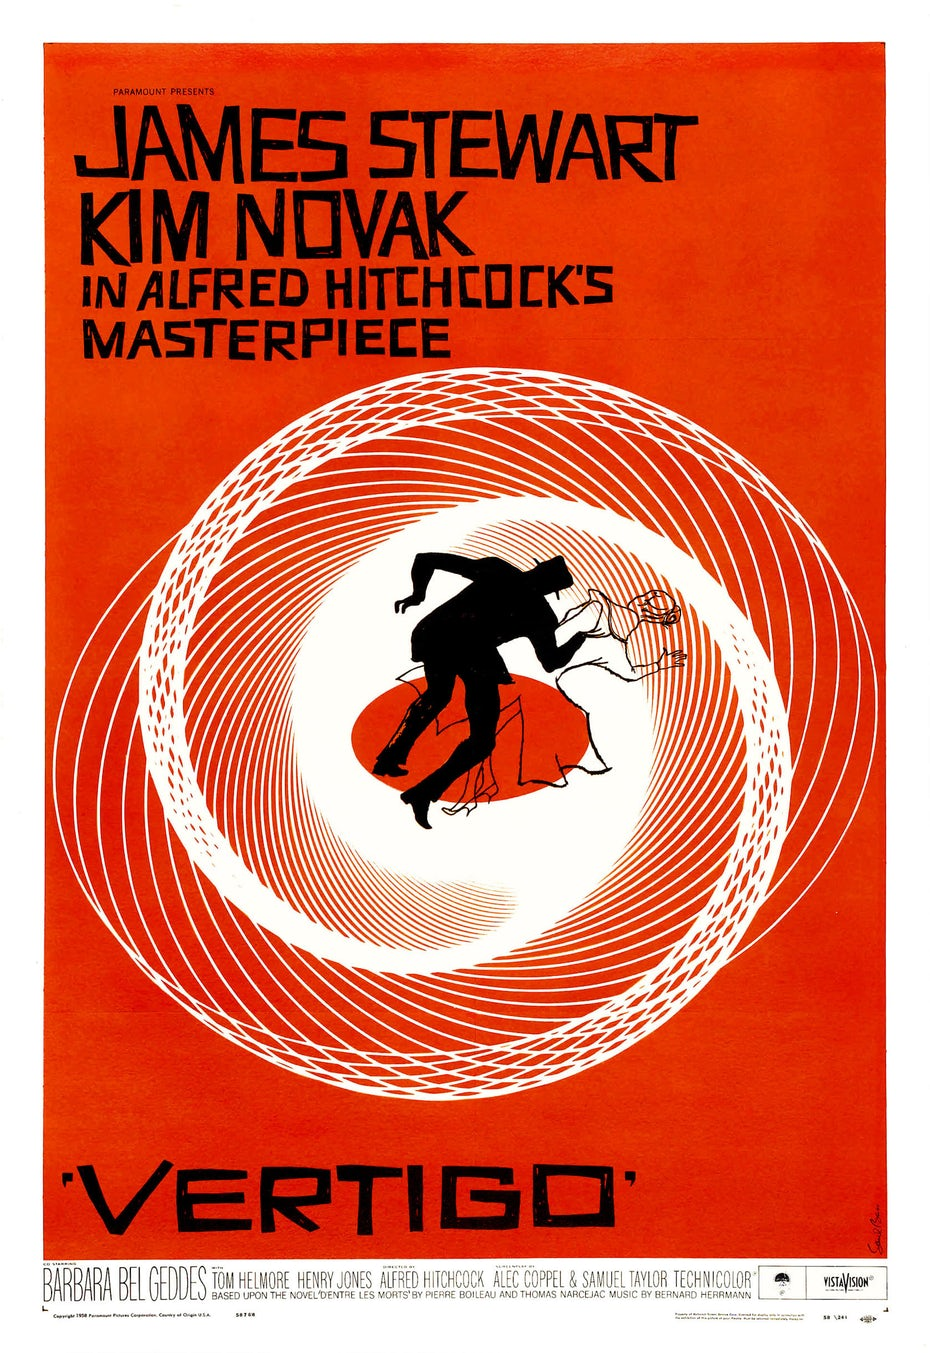 Vertigo poster design by Saul Bass